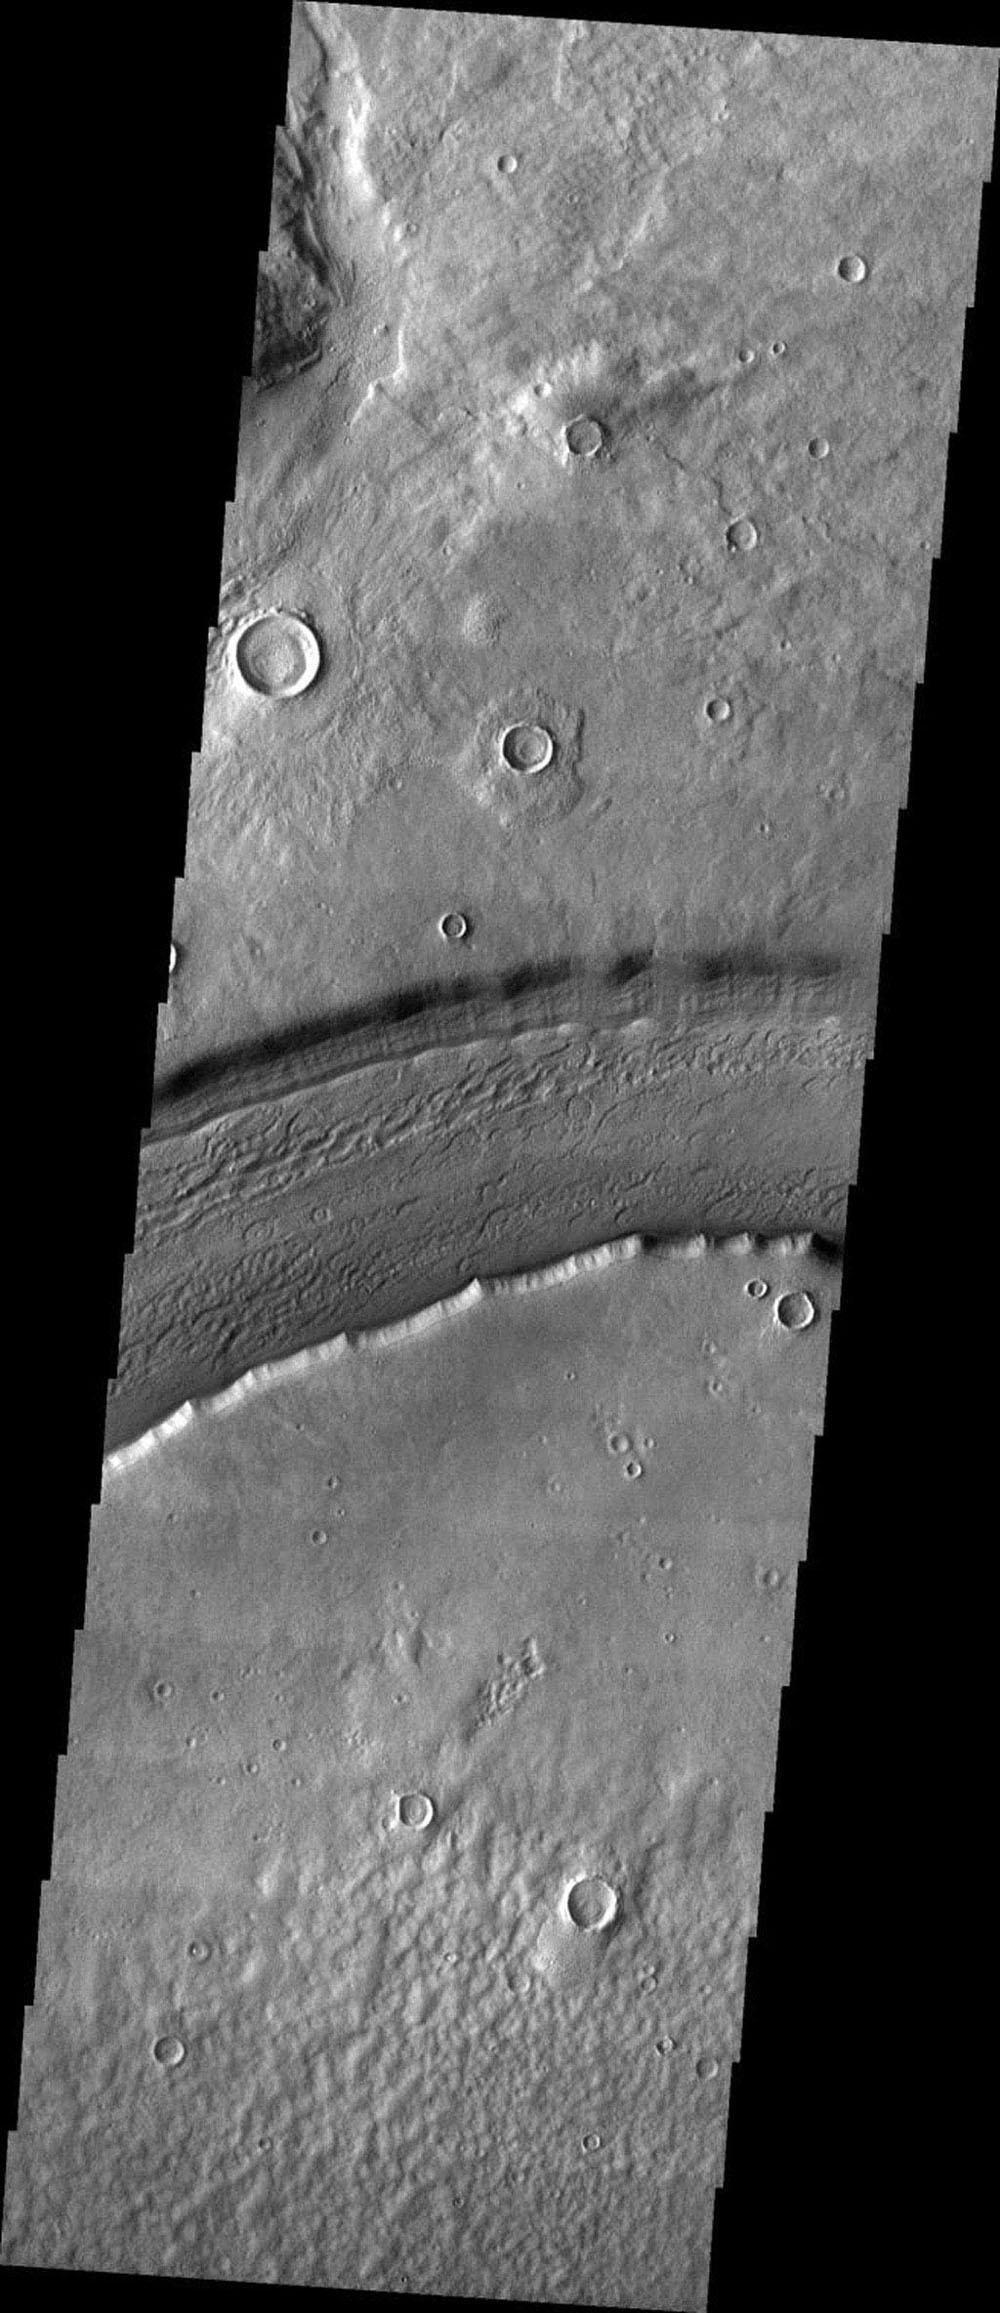 This image released on Oct 25, 2004 from NASA's 2001 Mars Odyssey shows Reull Vallis, located in the Martian southern highlands, just east of Hellas Basin.